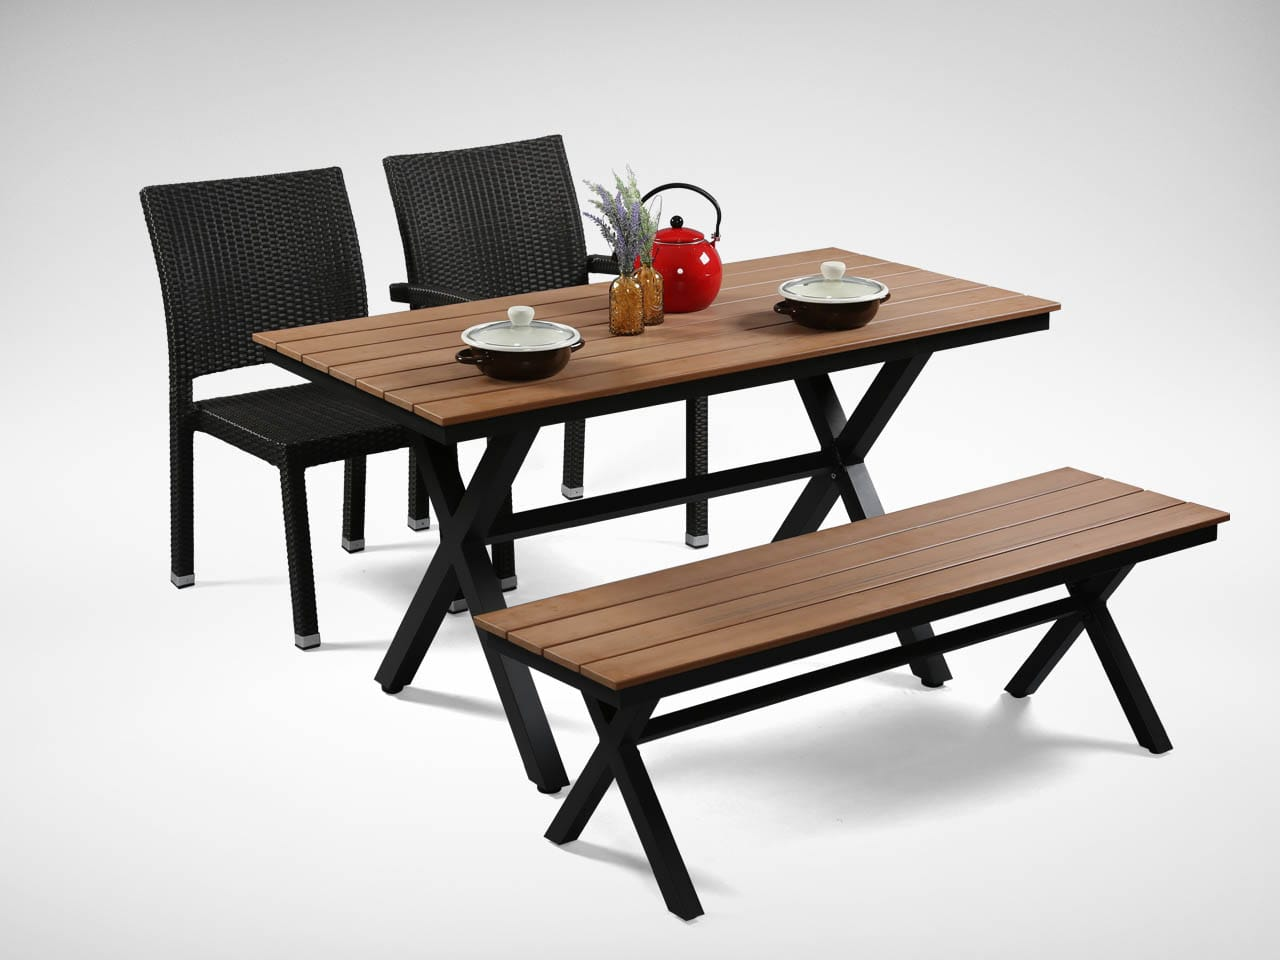 [Fossil Outdoor Dining Table, Fossil Outdoor Bench No Back, Maldives Outdoor Armchair & Maldives Outdoor Sidechair]